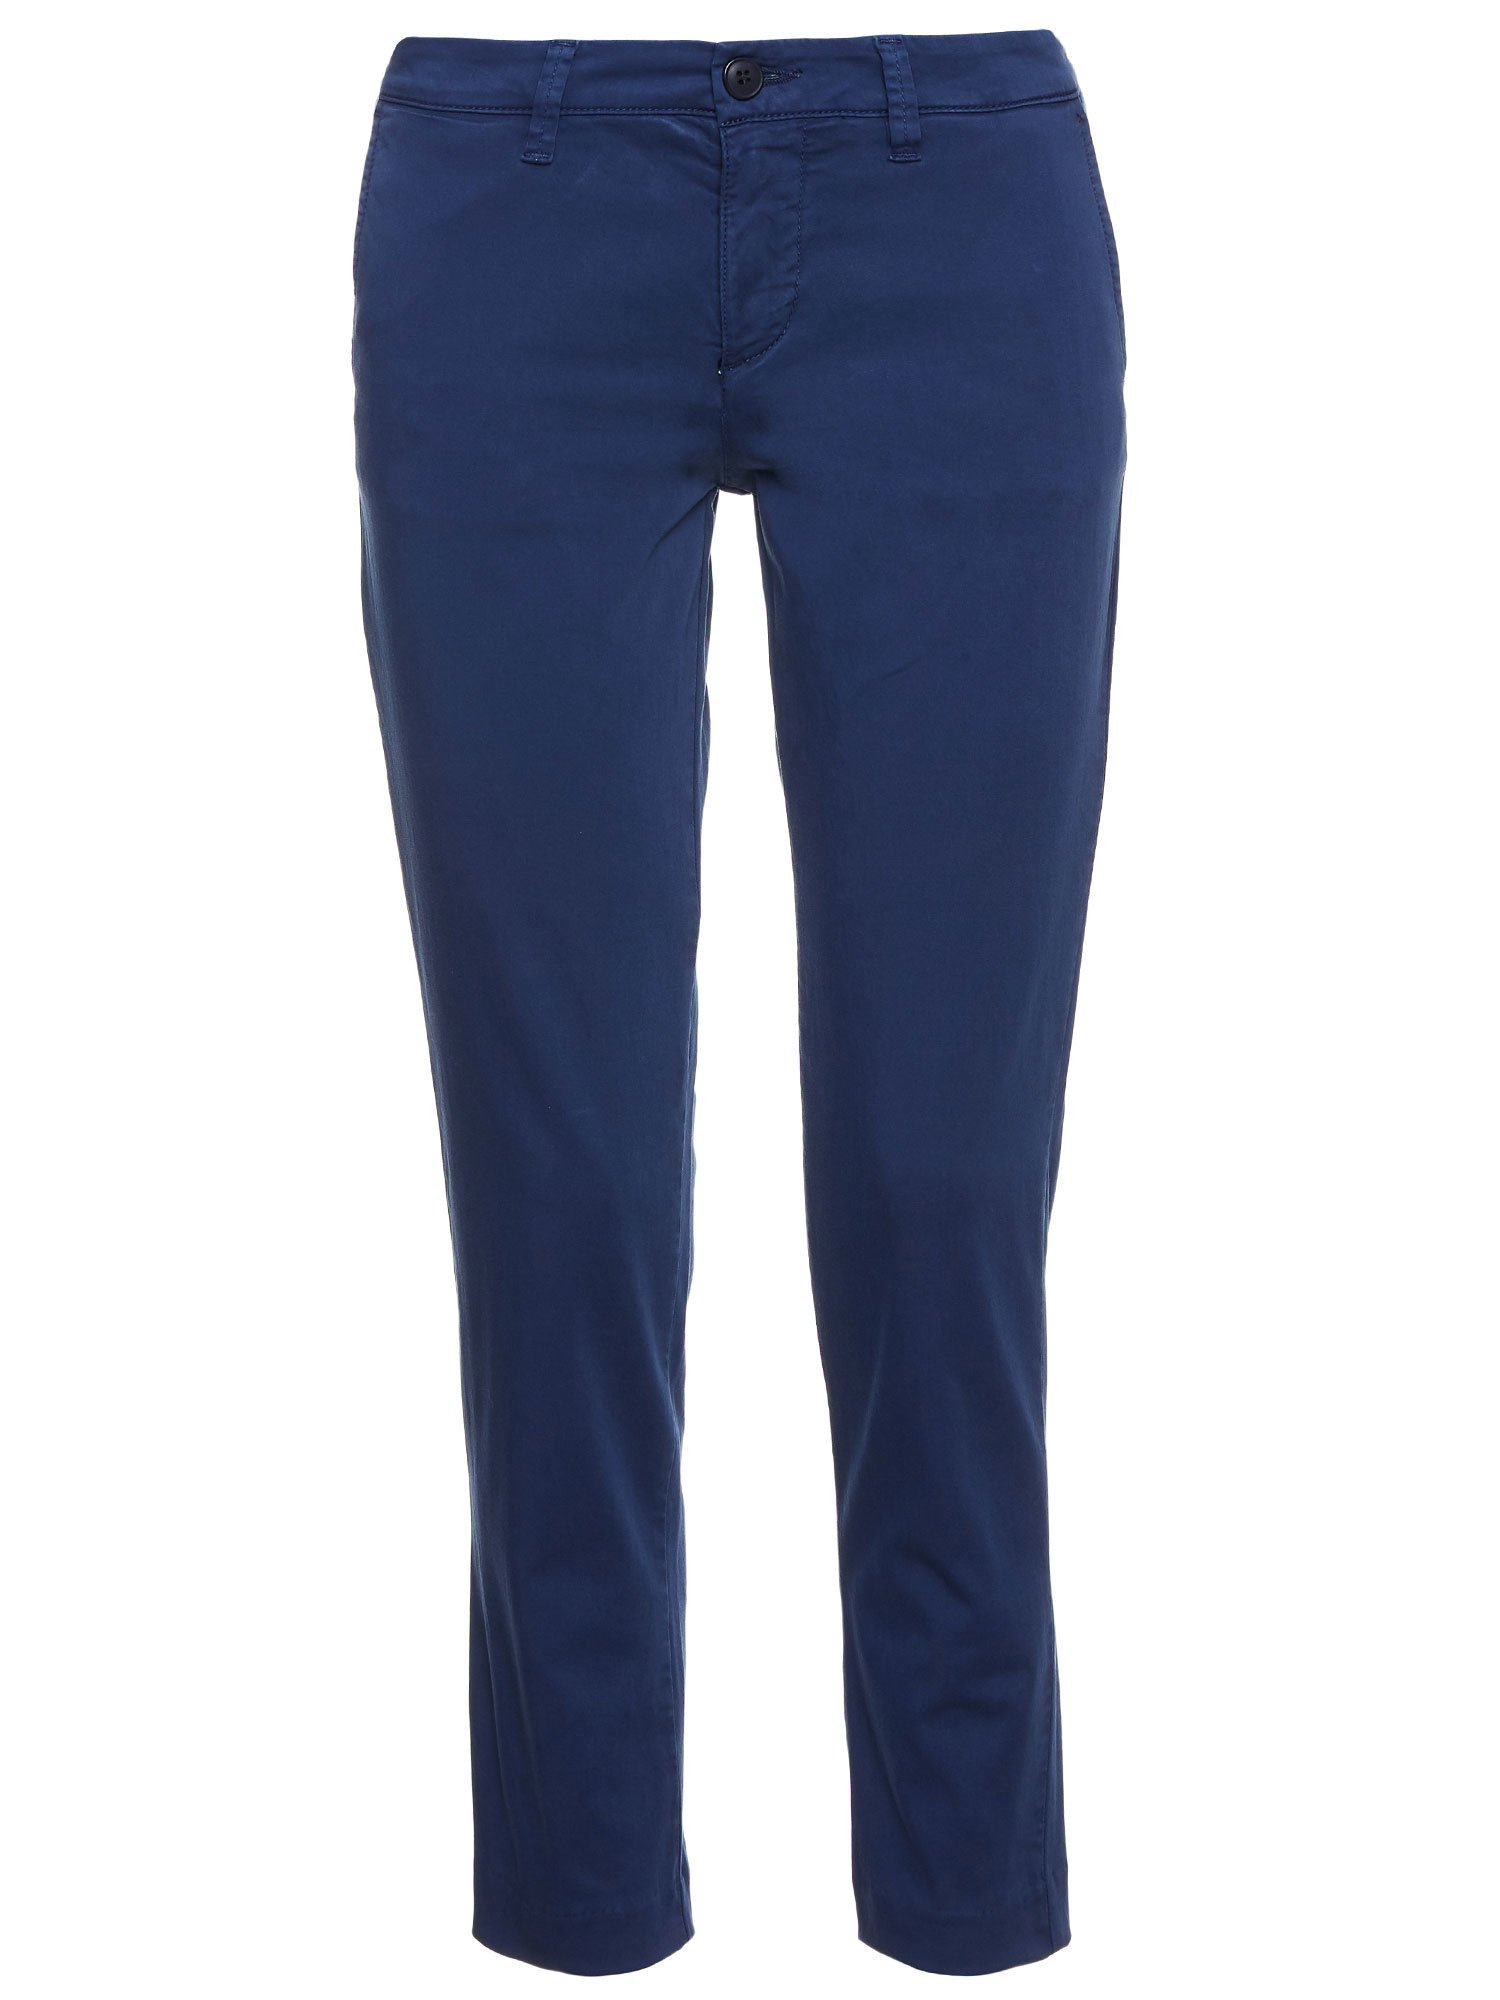 LONG COTTON SATIN TROUSERS - Blauer